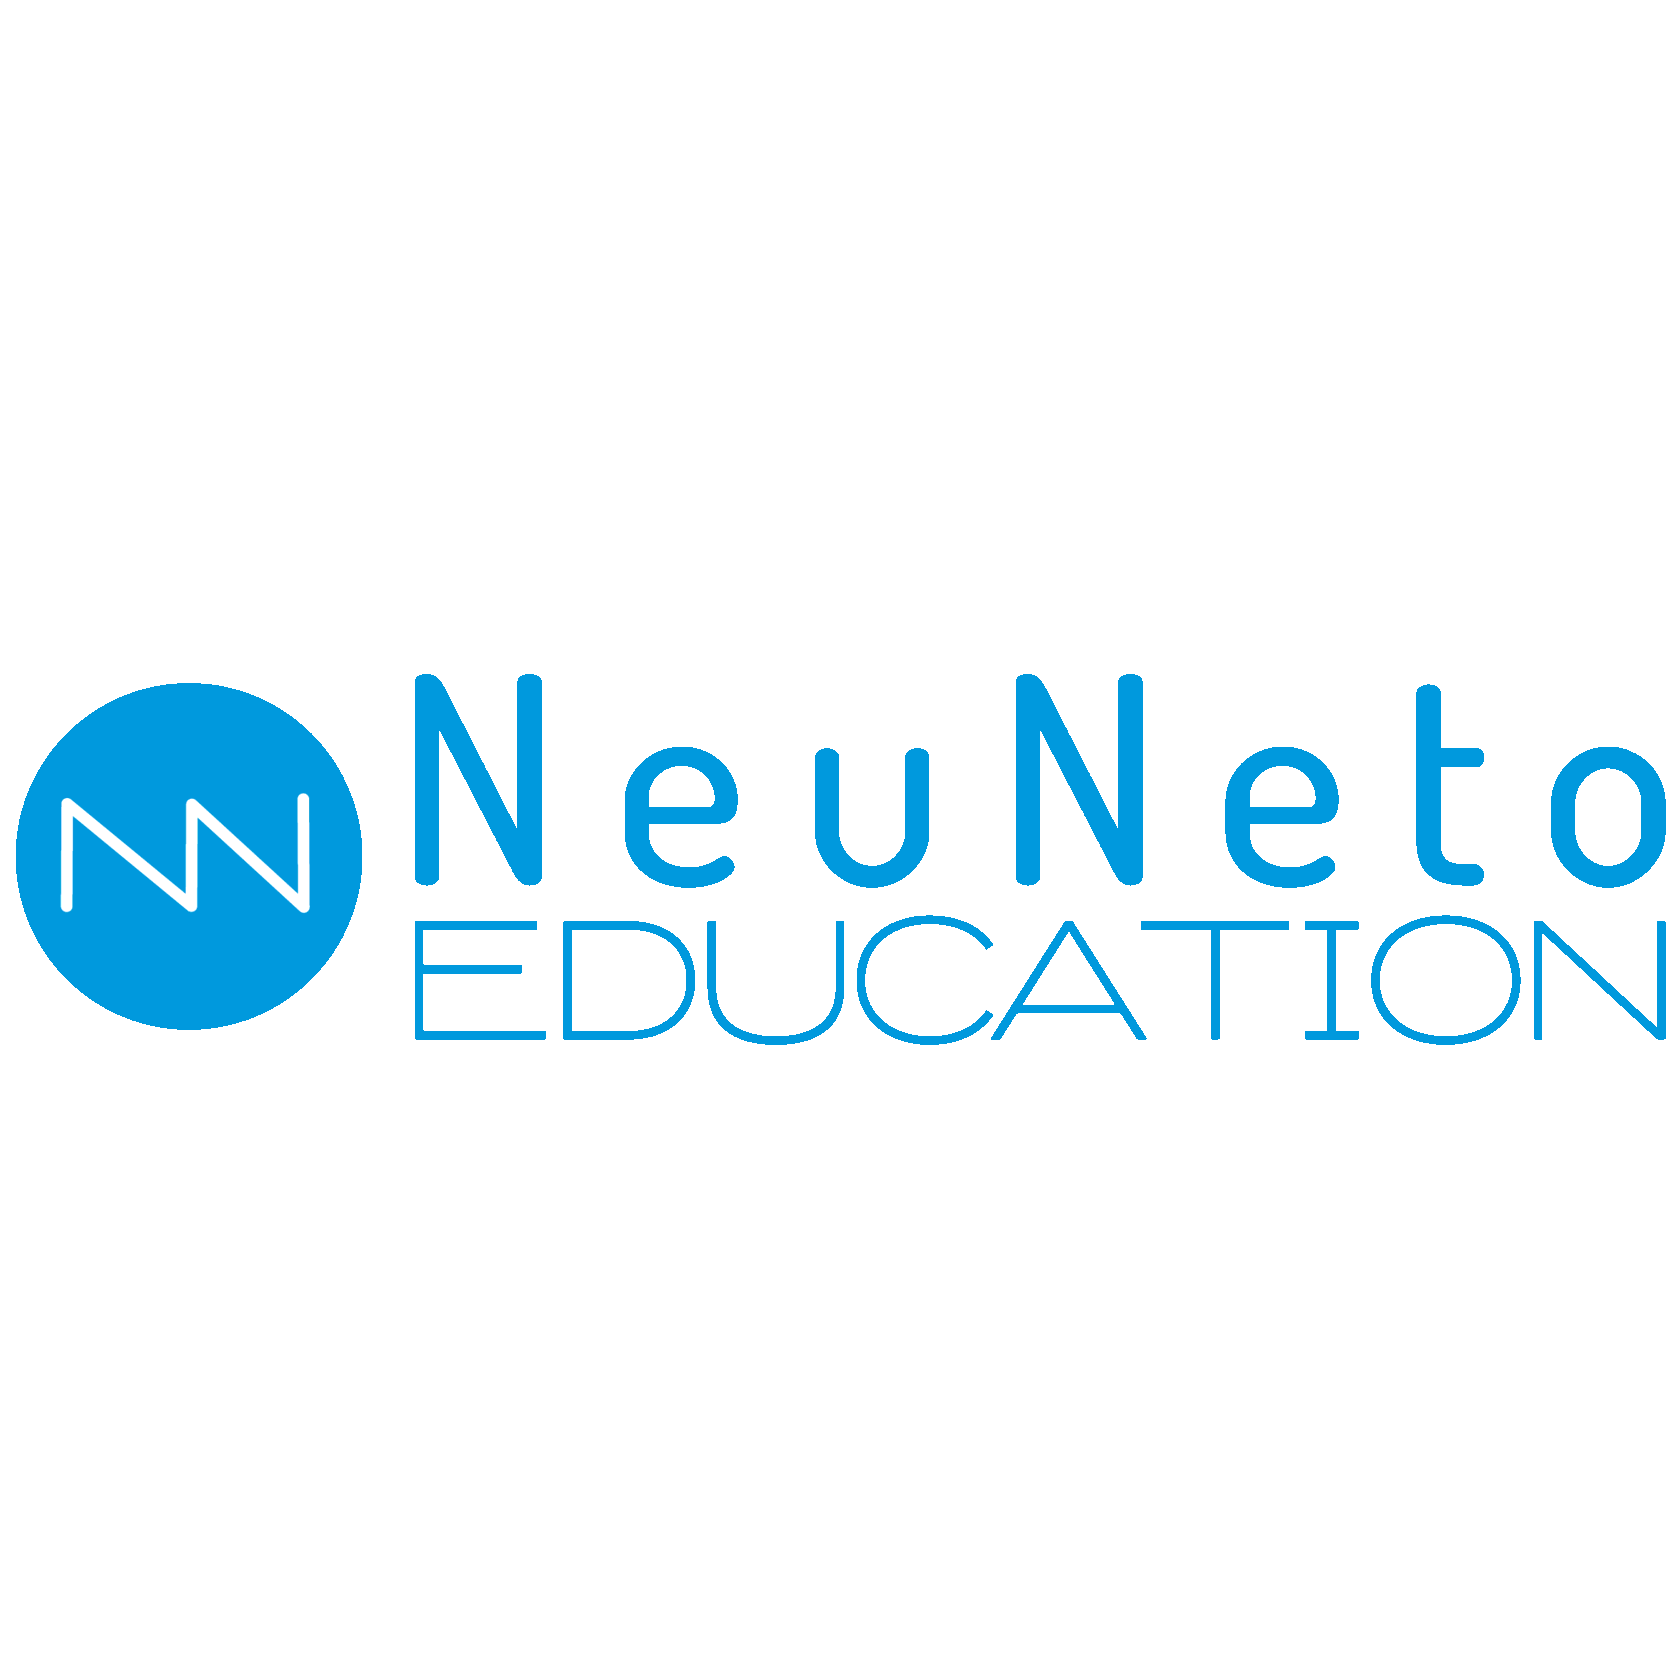 NeuNeto/ Education